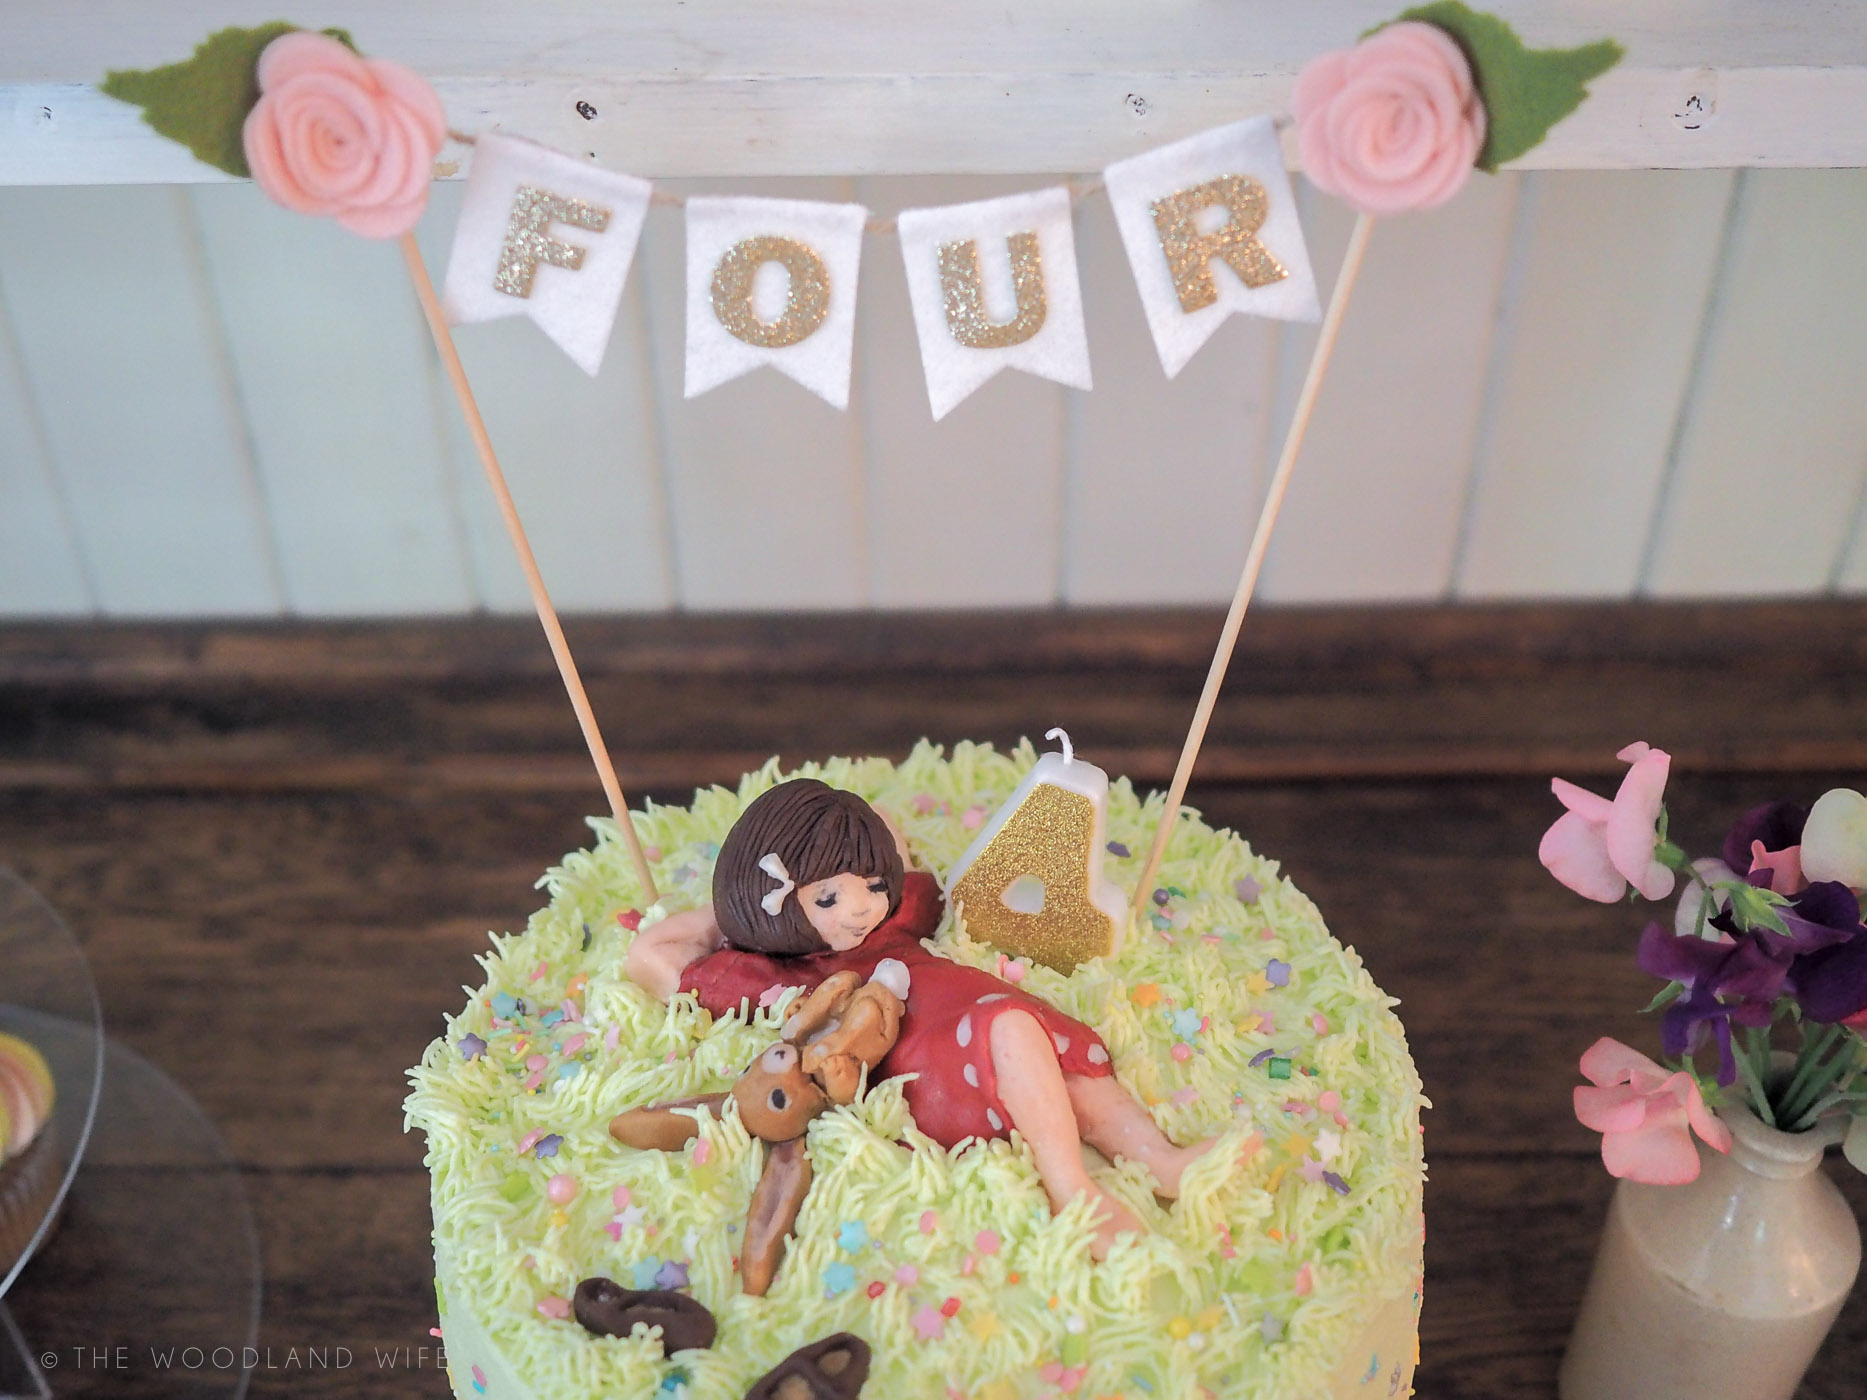 The Woodland Wife - Woodland Explorer Birthday Party - Belle and Boo Birthday Cake - Rainbow Cake - Ombre Cake - Pastel Cake